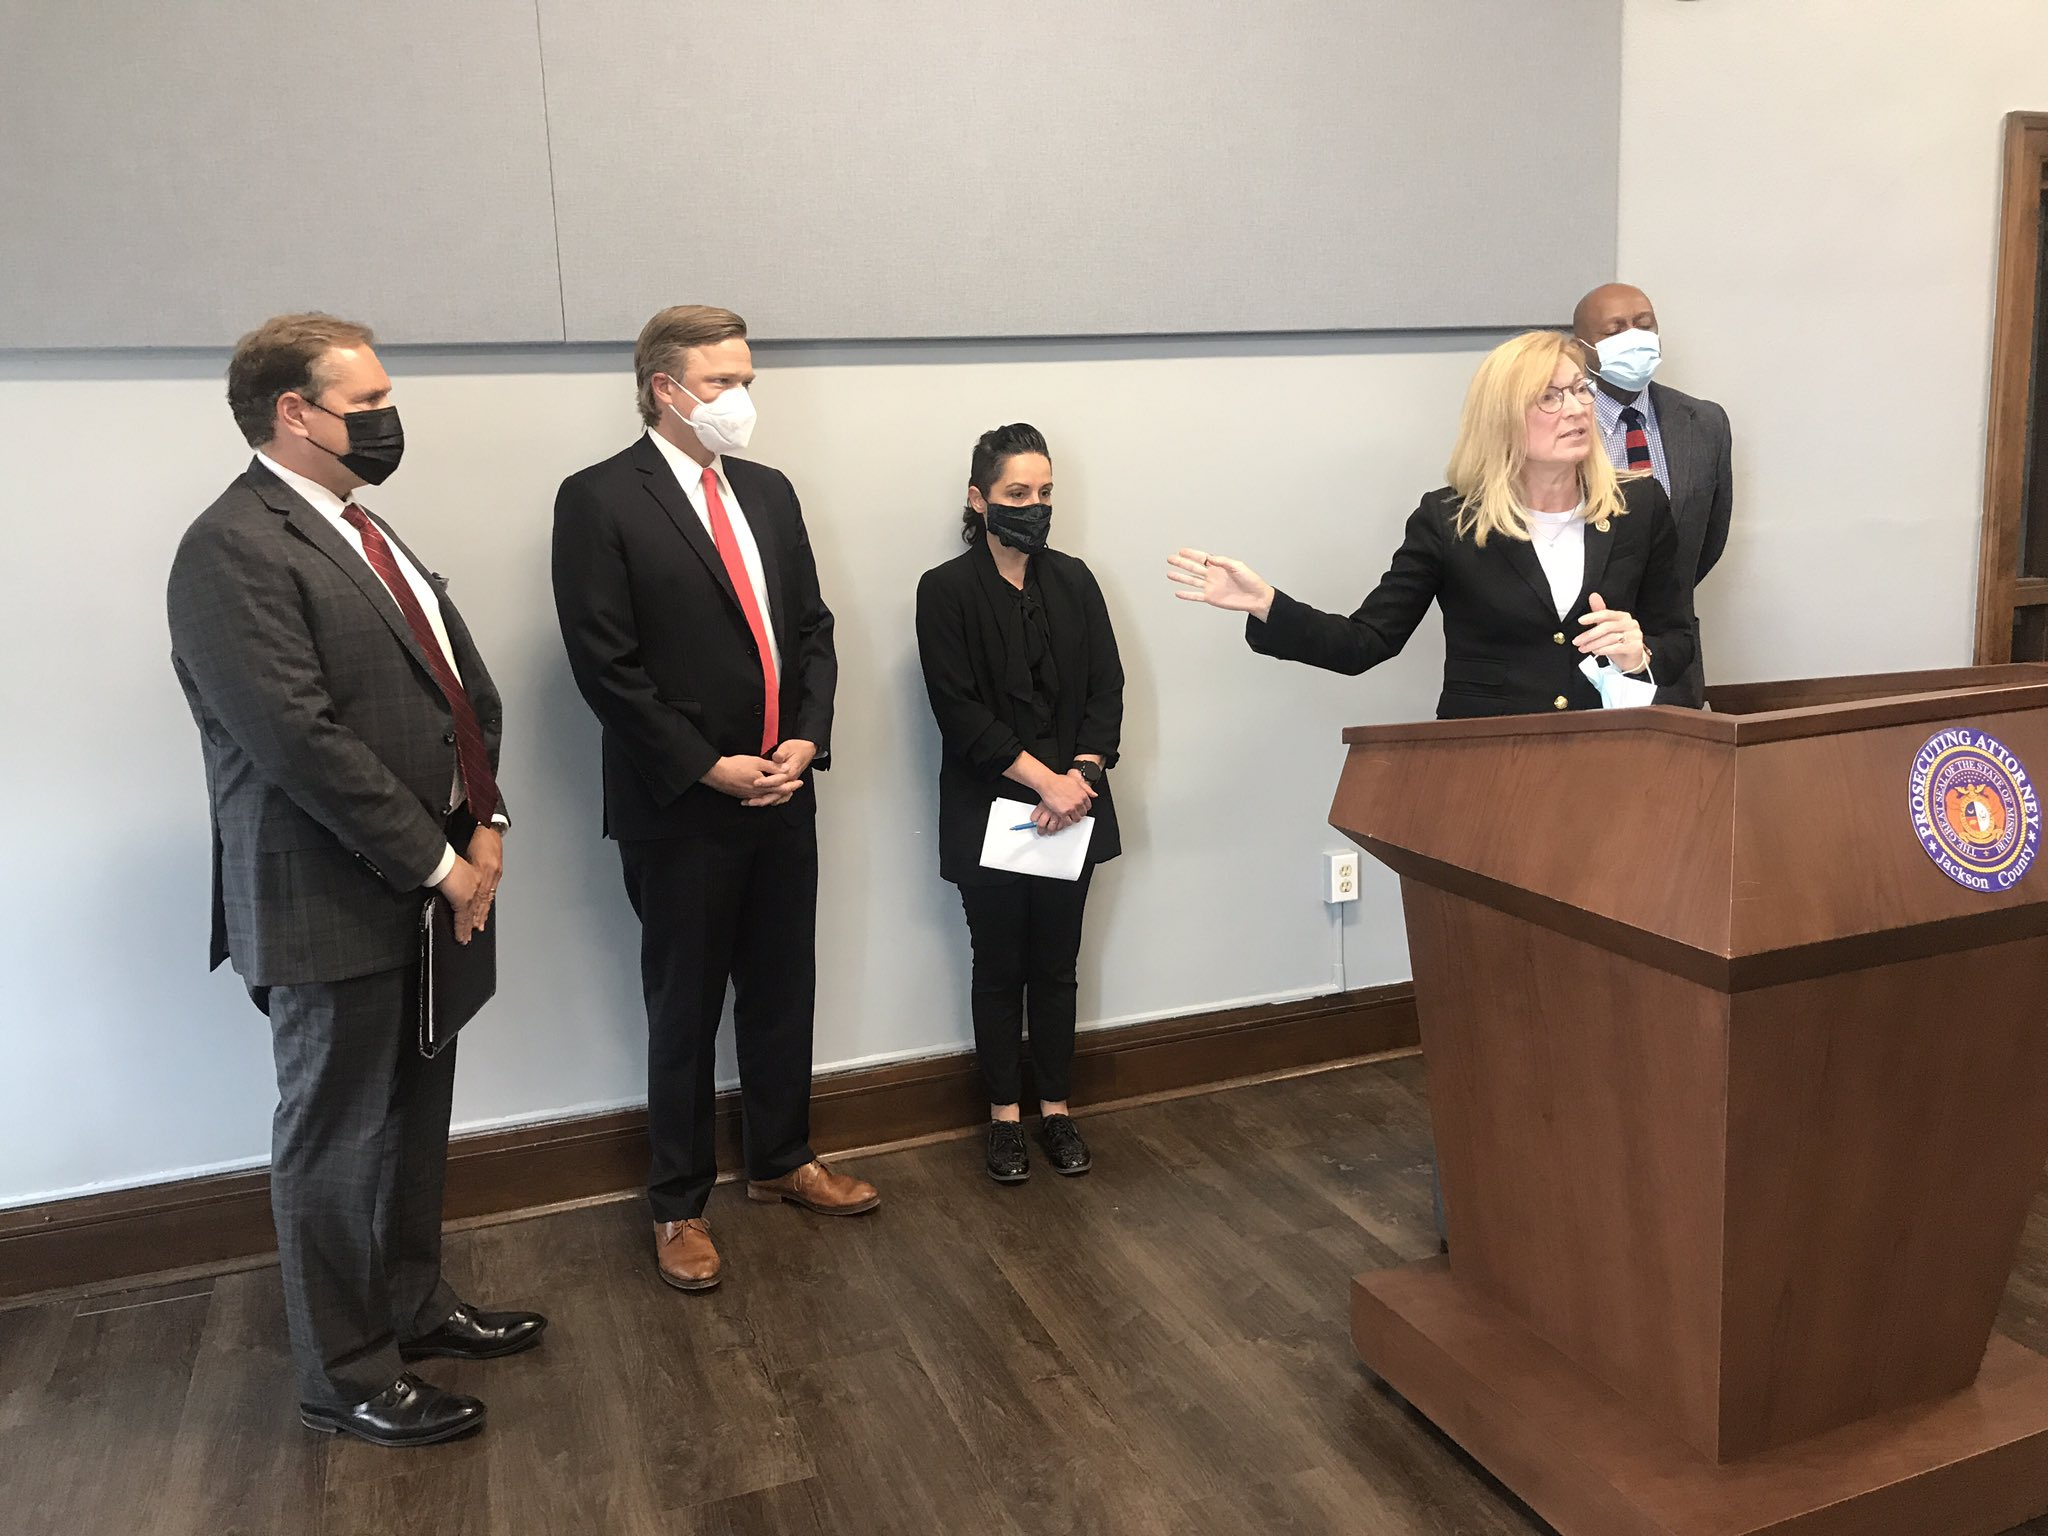 Prosecutor Jean Peters Baker at a press conference calling for the release of Kevin Strickland on May 10, 2021 in Kansas City   Source: Twitter/@angiericono